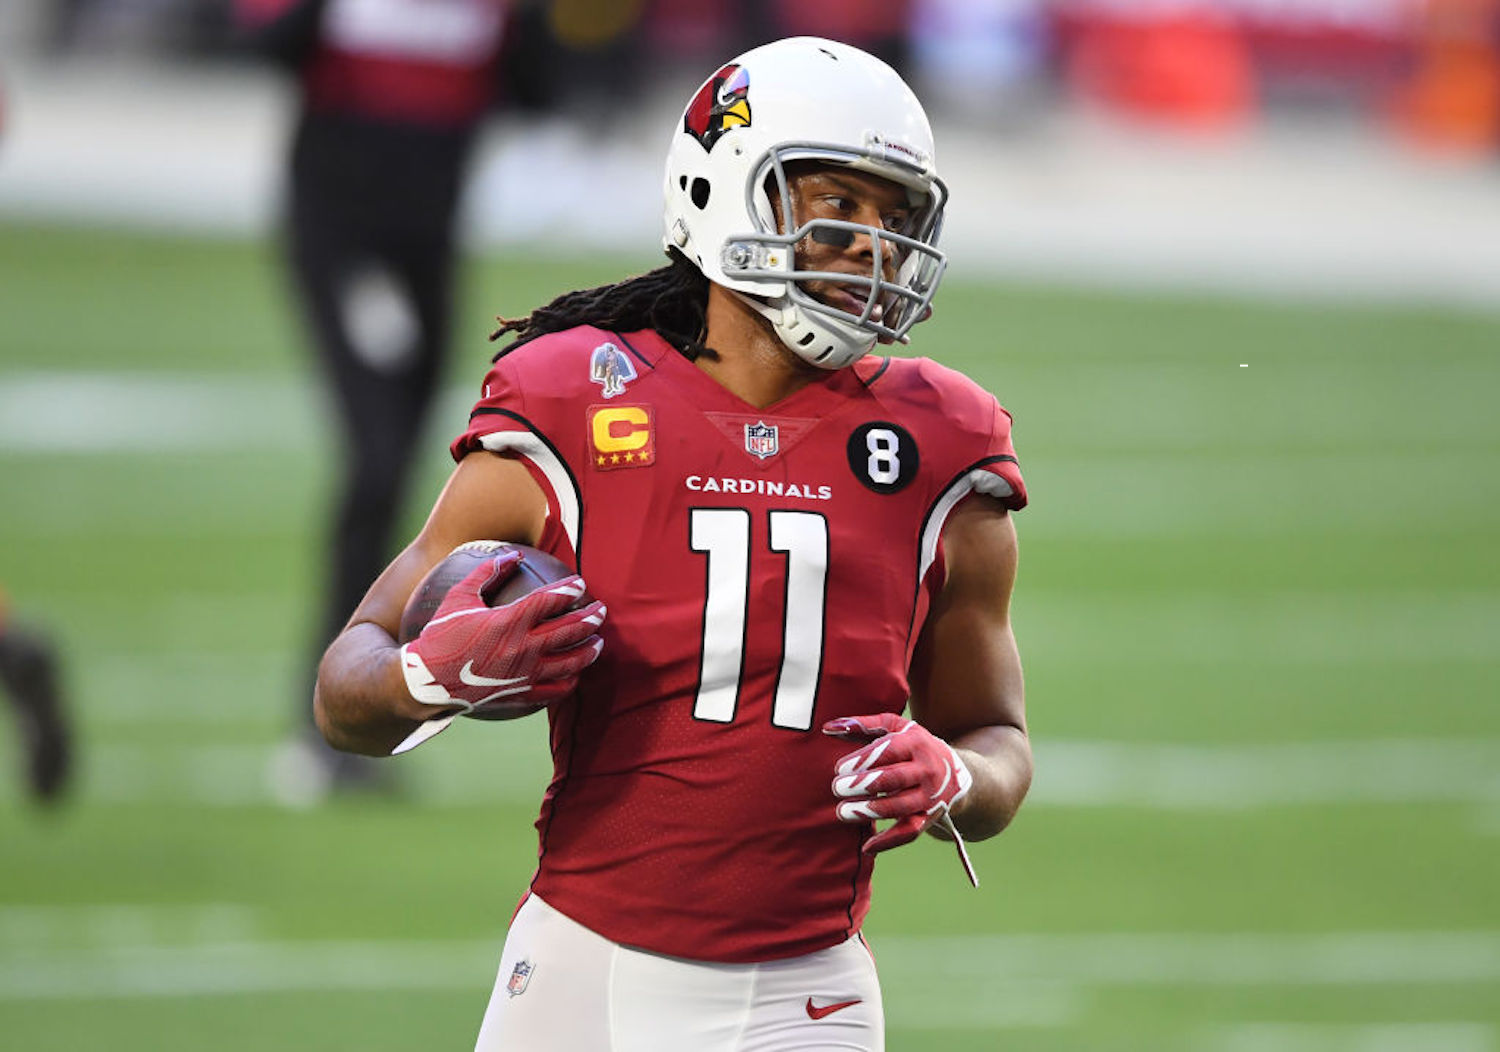 The Arizona Cardinals will be without future Hall-of-Fame wide receiver Larry Fitzgerald Sunday against the Los Angeles Rams.